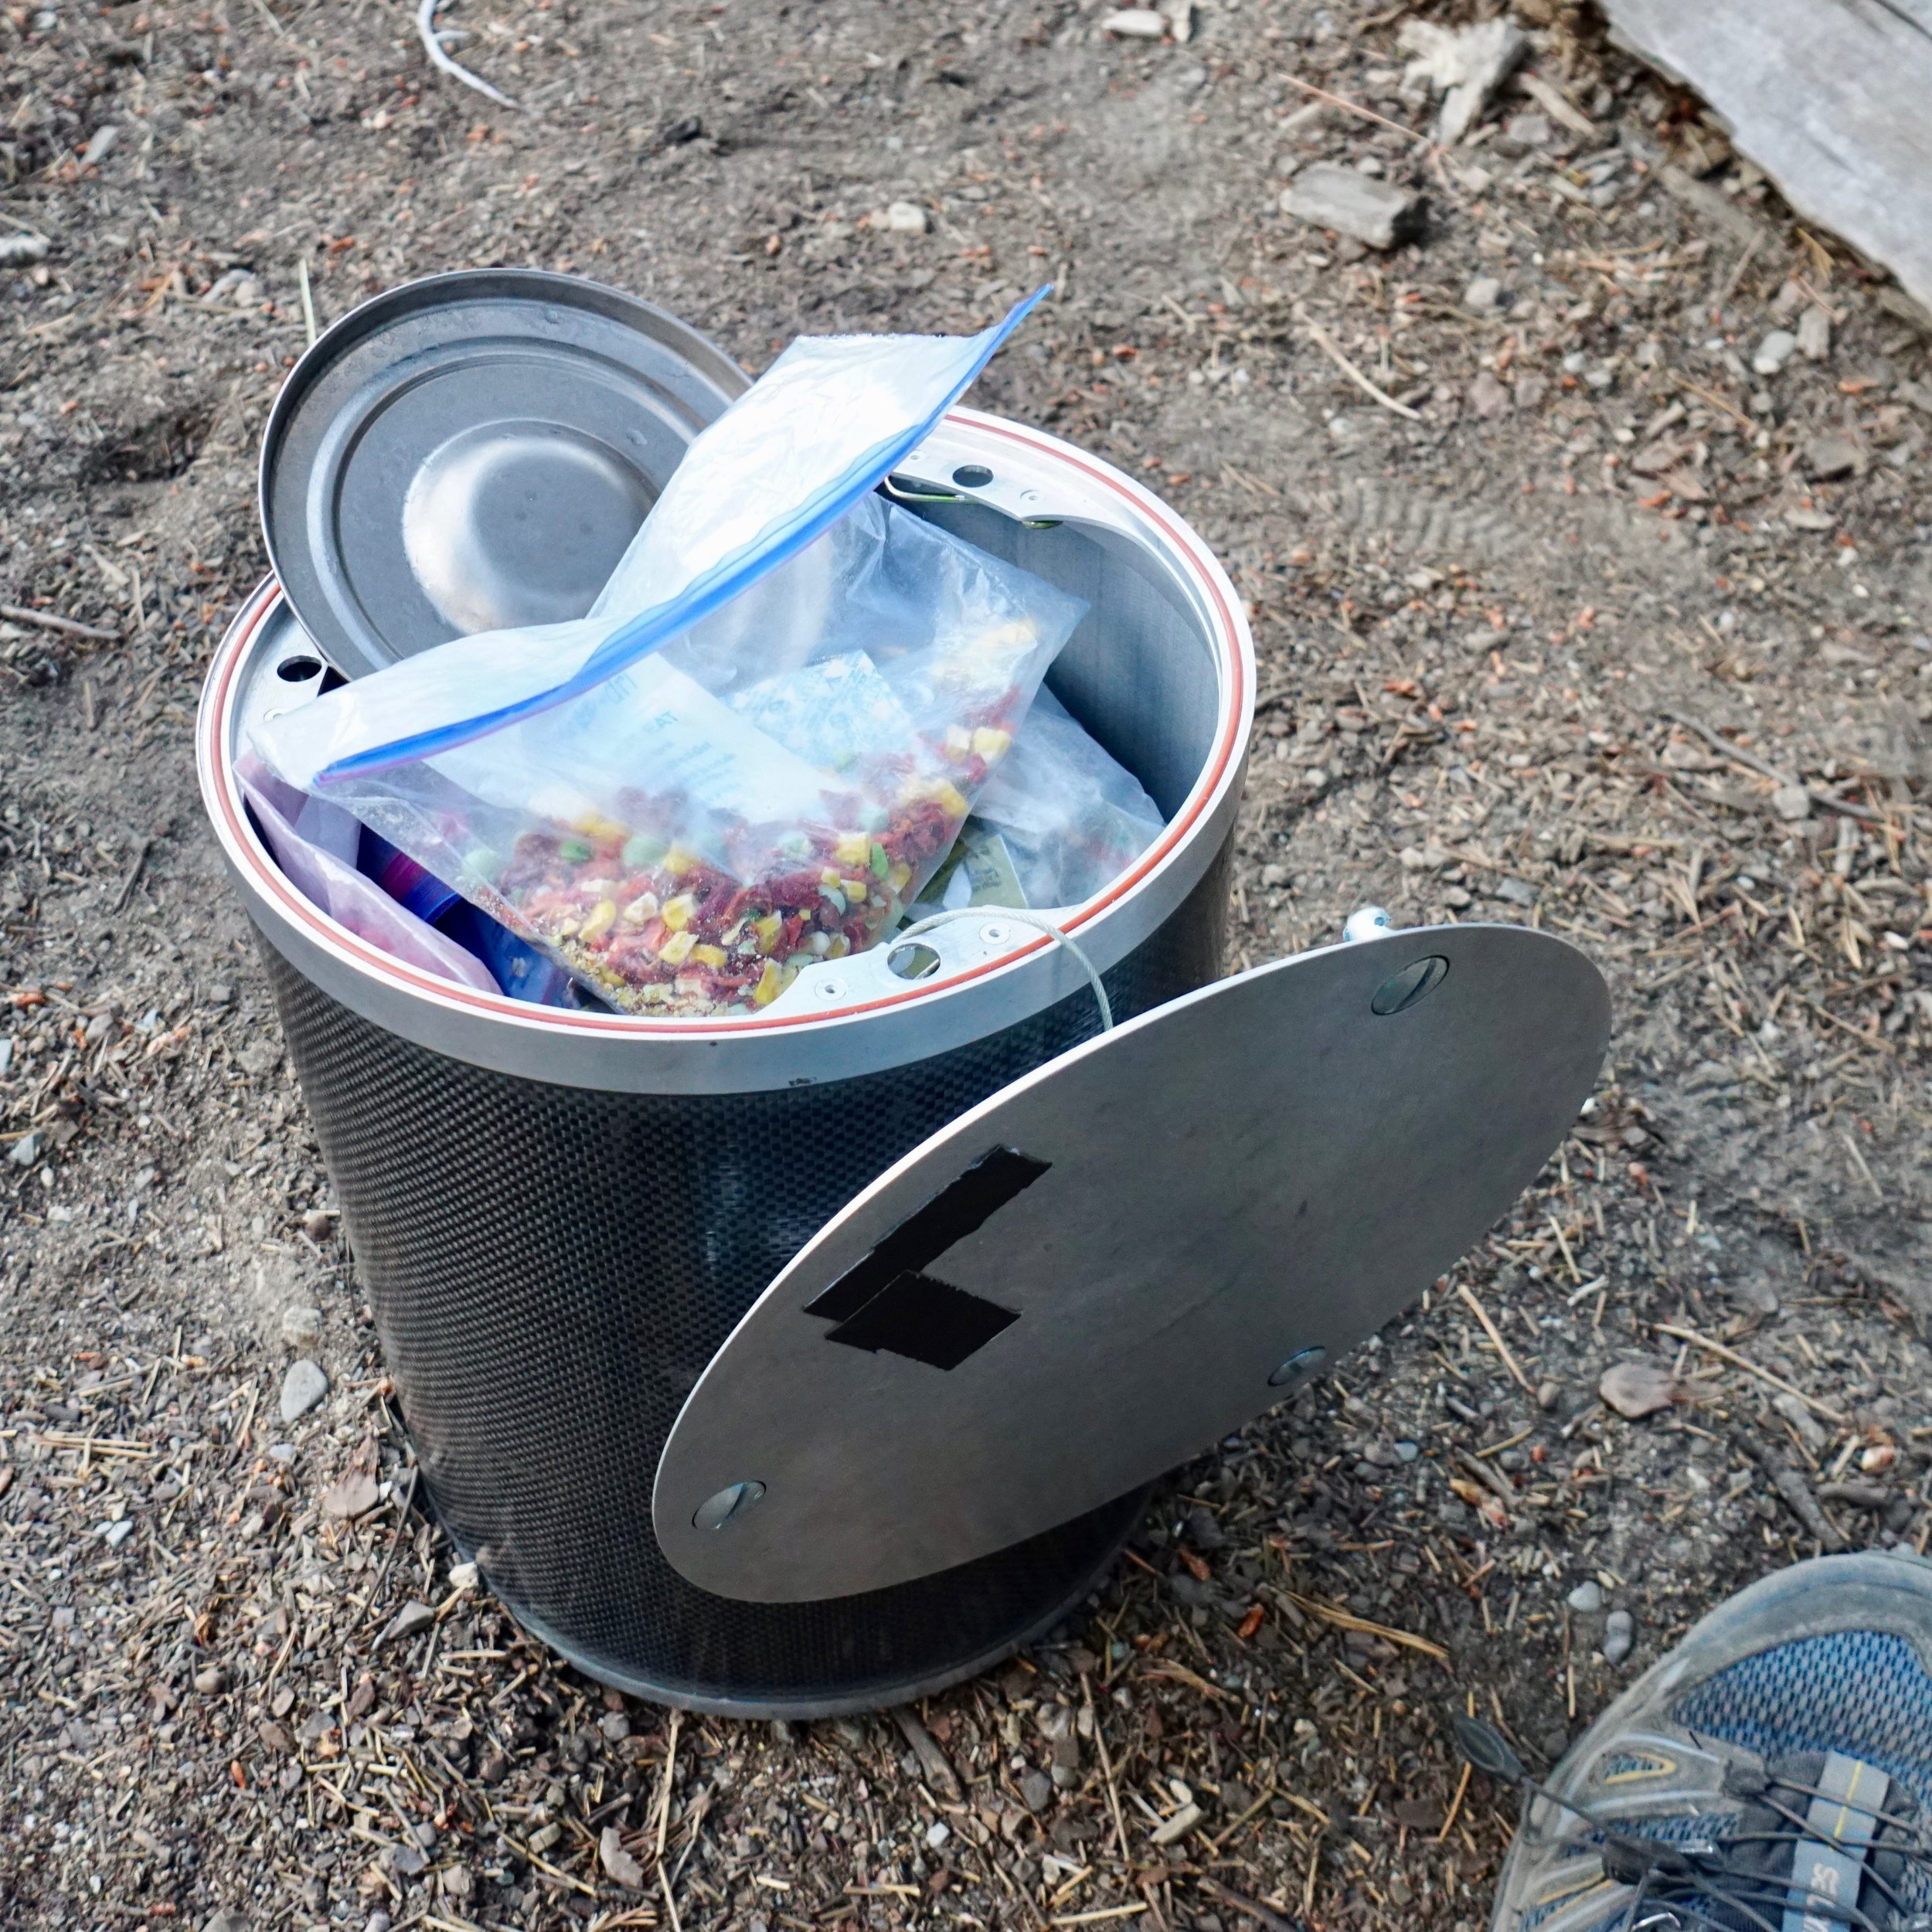 Bear canister - Some wilderness areas require bear canister use. My Bearikade canister can hold about 6 days of food.